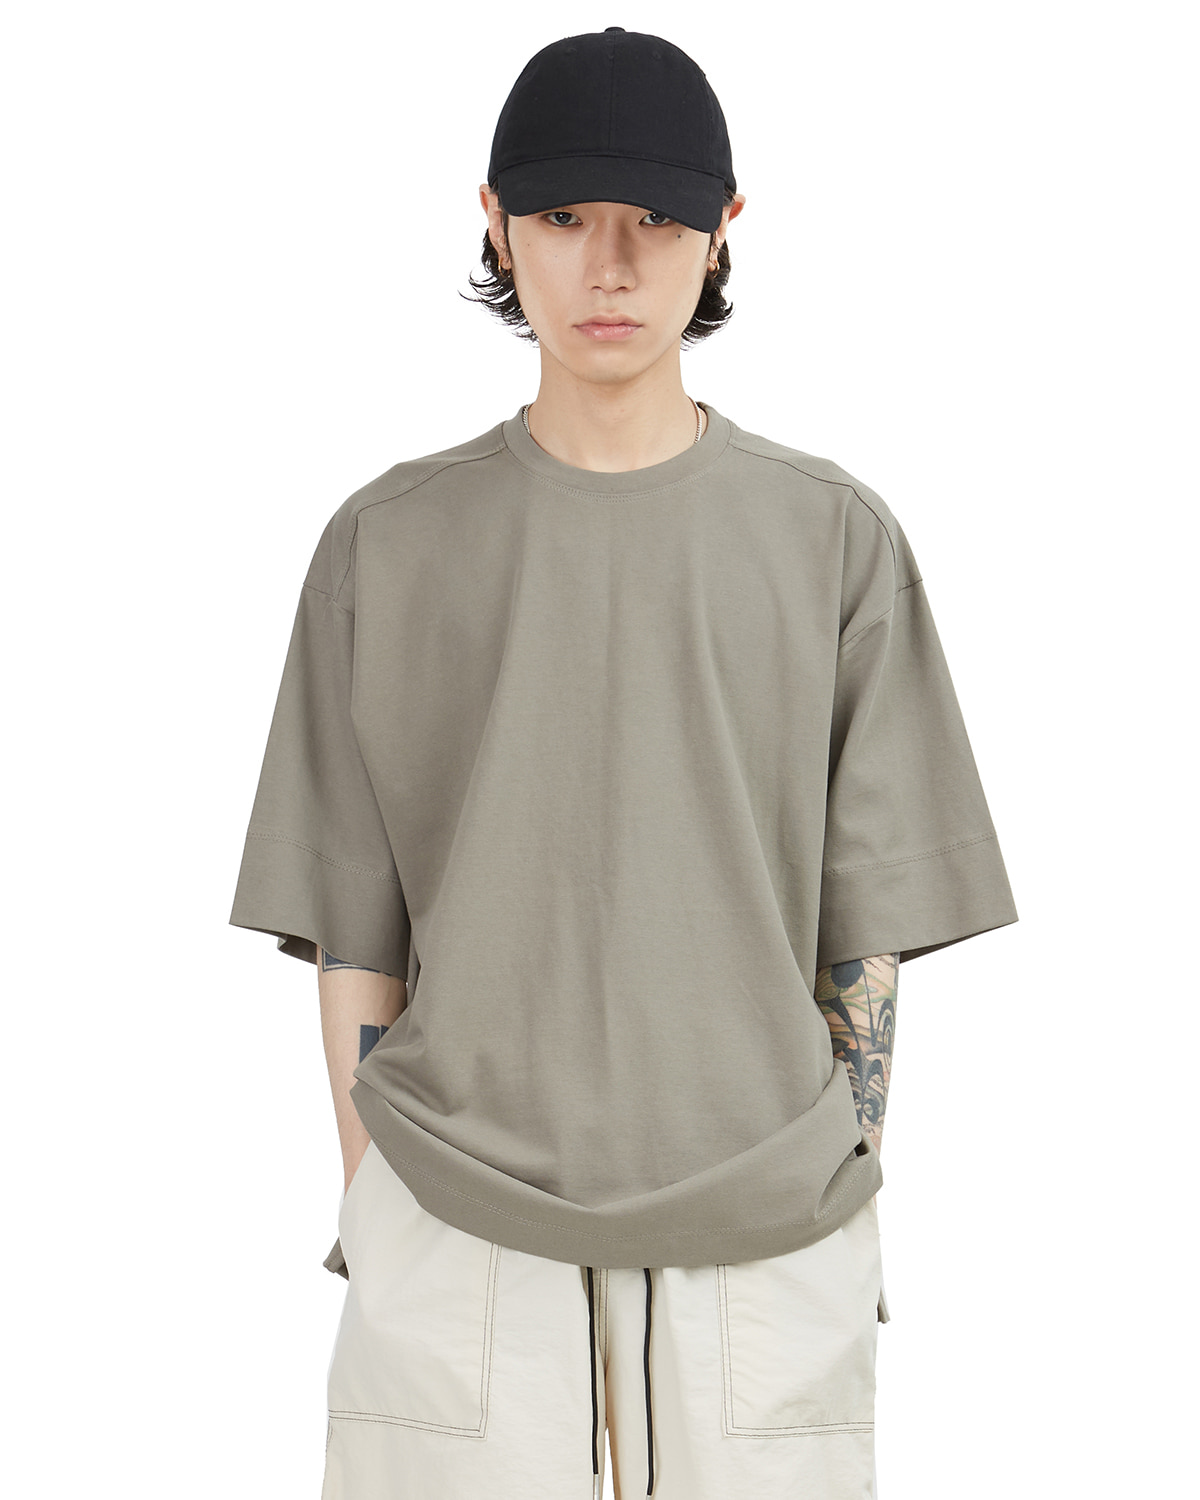 raucohouse-OBLIQUE SLIT OVER T-SHIRTS - RAUCO HOUSE♡韓國男裝上衣